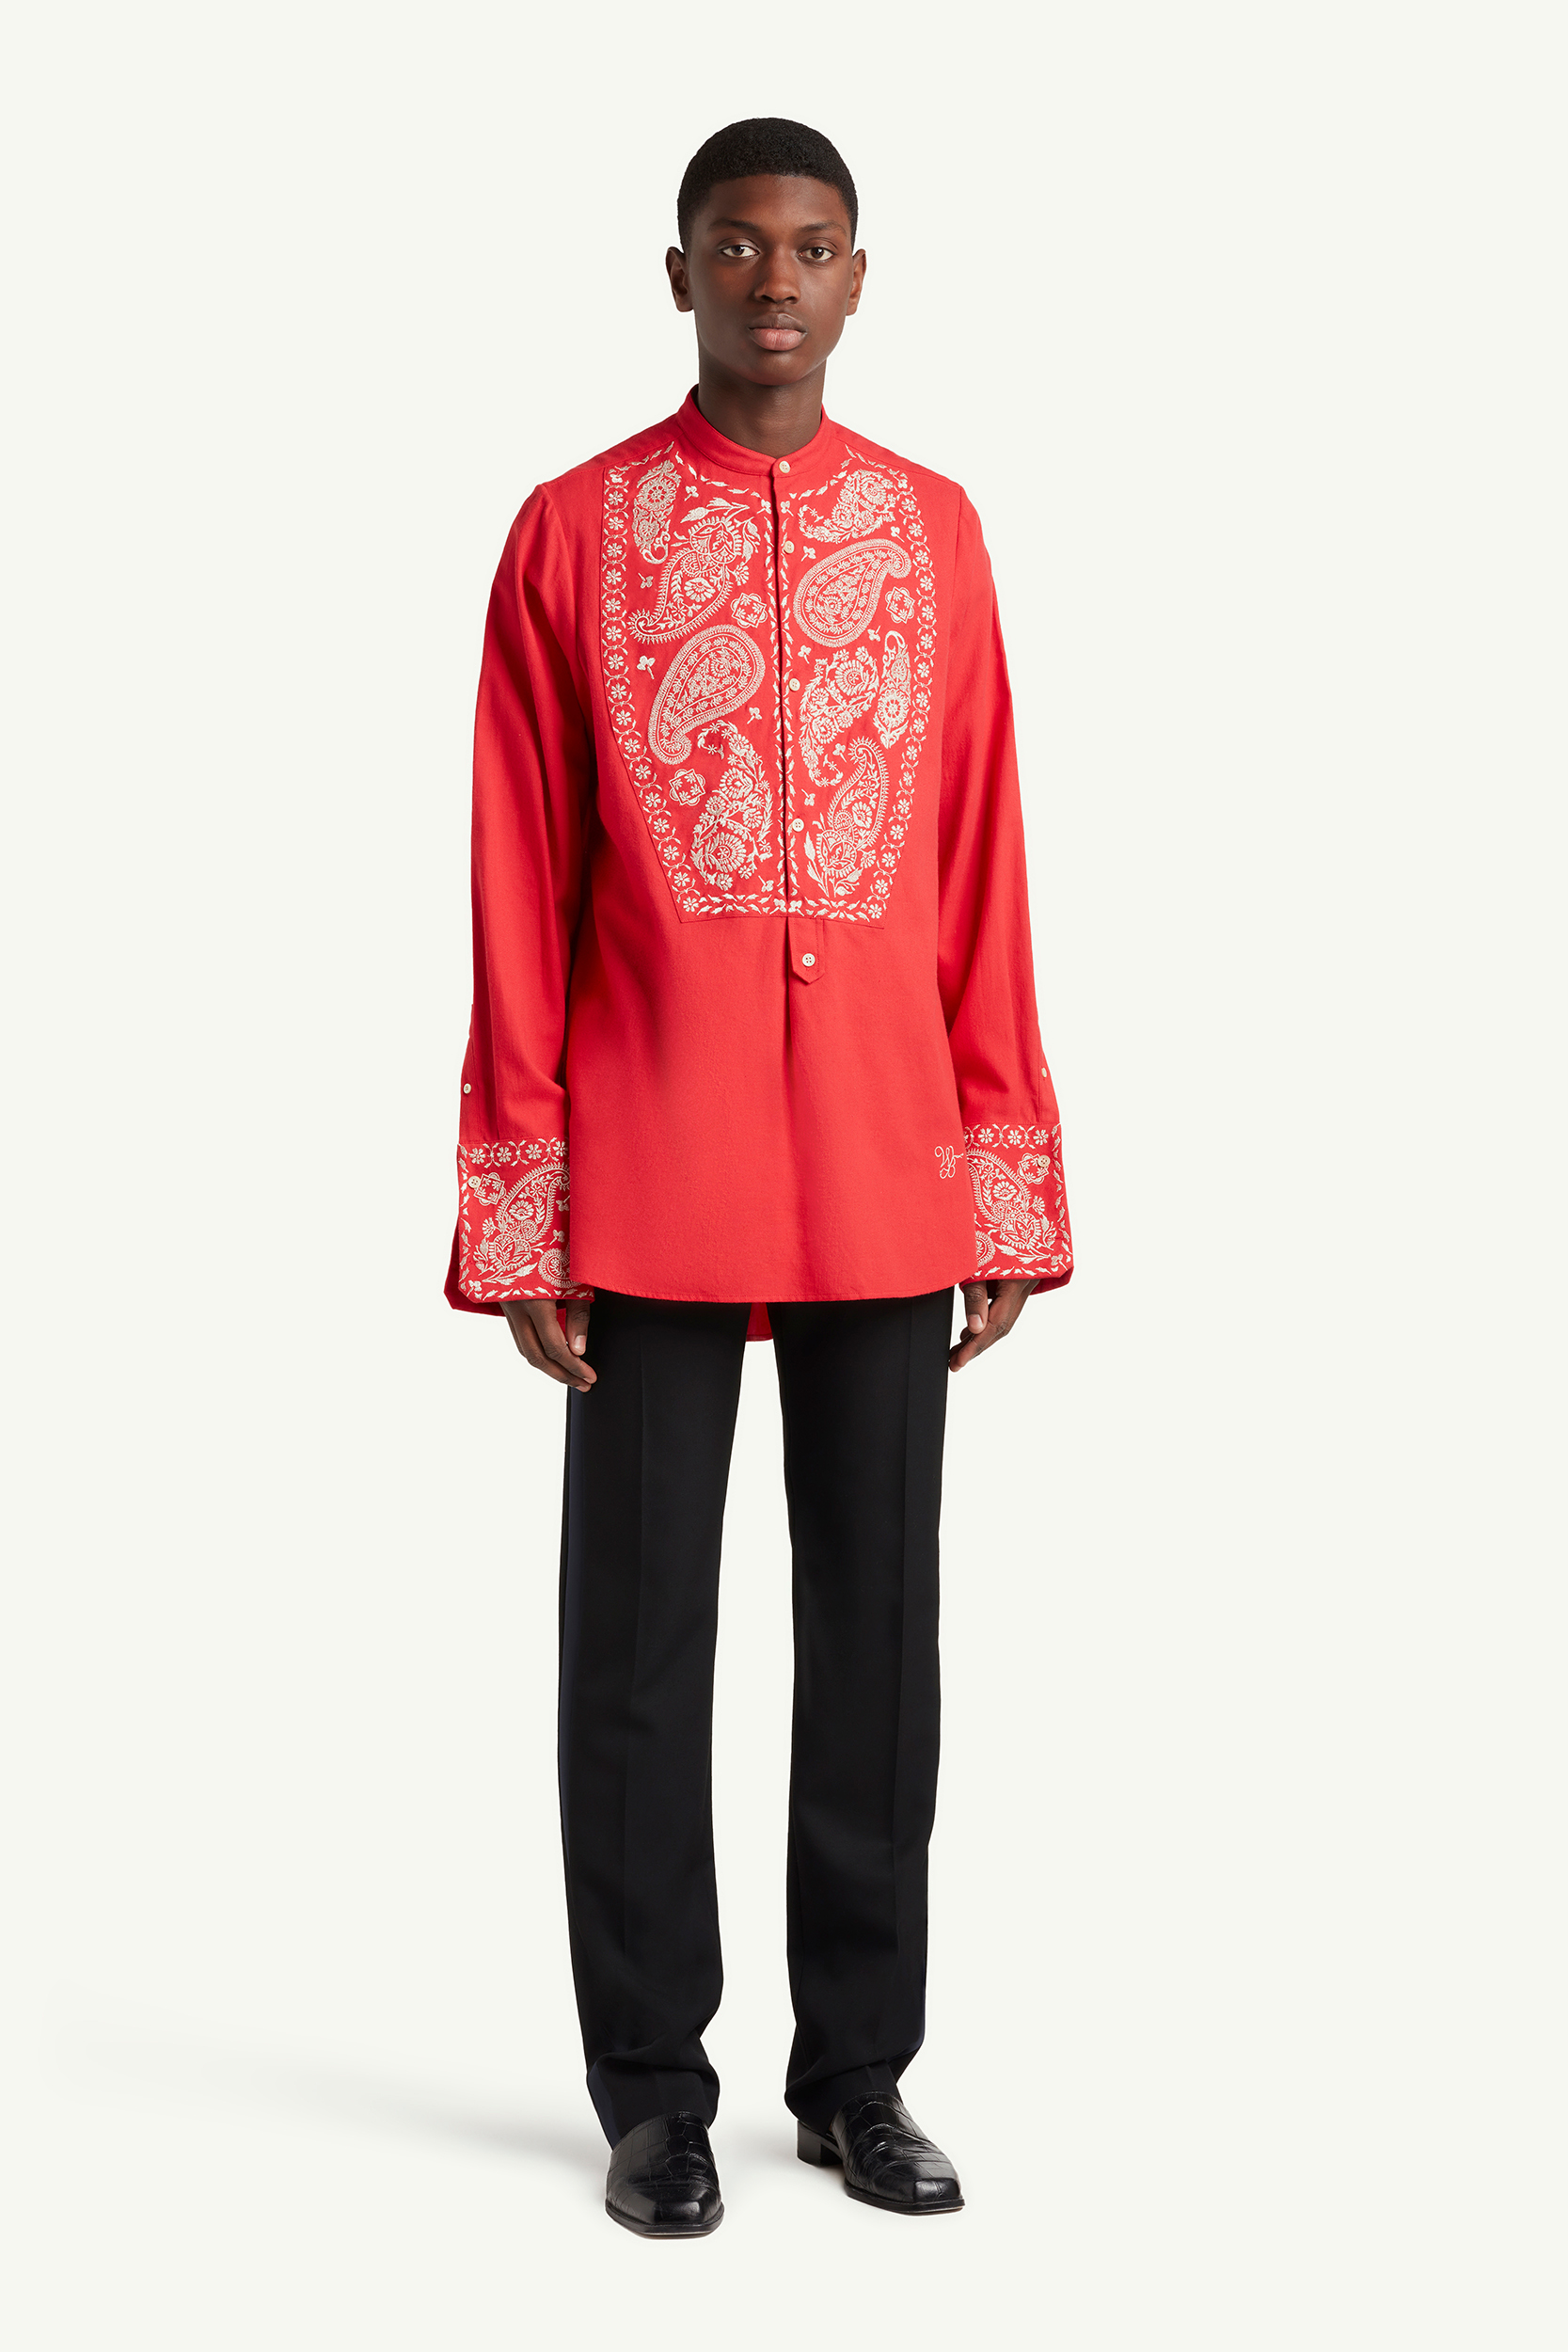 Menswear model wearing Wales Bonner red shit with white ornaments and black smart trousers | LRP